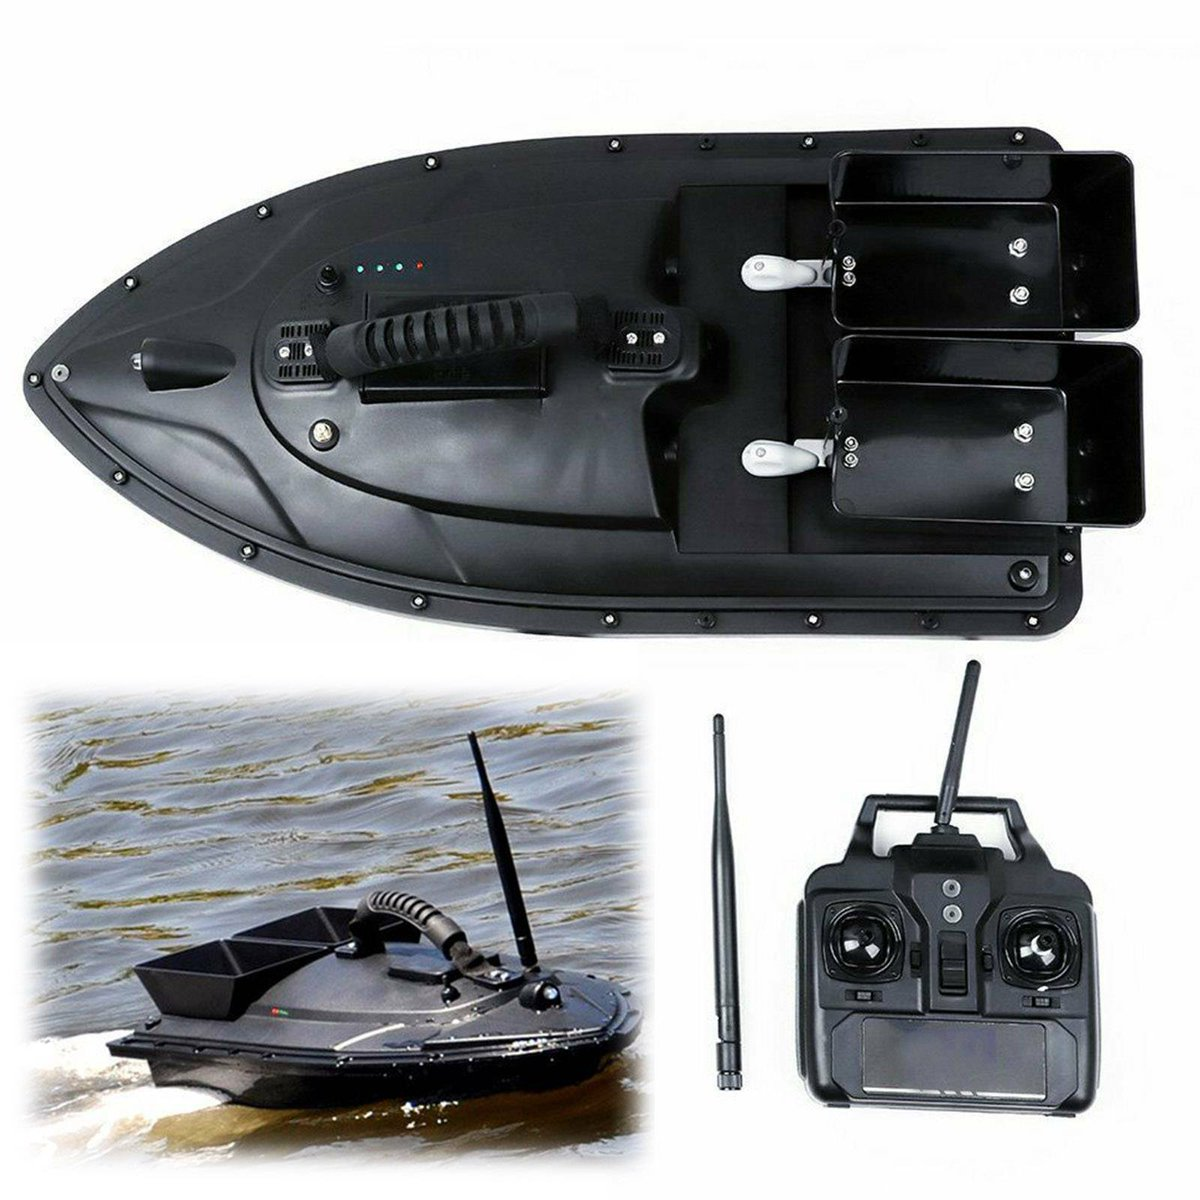 Ad - Cheap Bait Boat On eBay here -->> https://t.co/0x6o2G0Pz5  #carpfishing #bait<b>Boat</b>